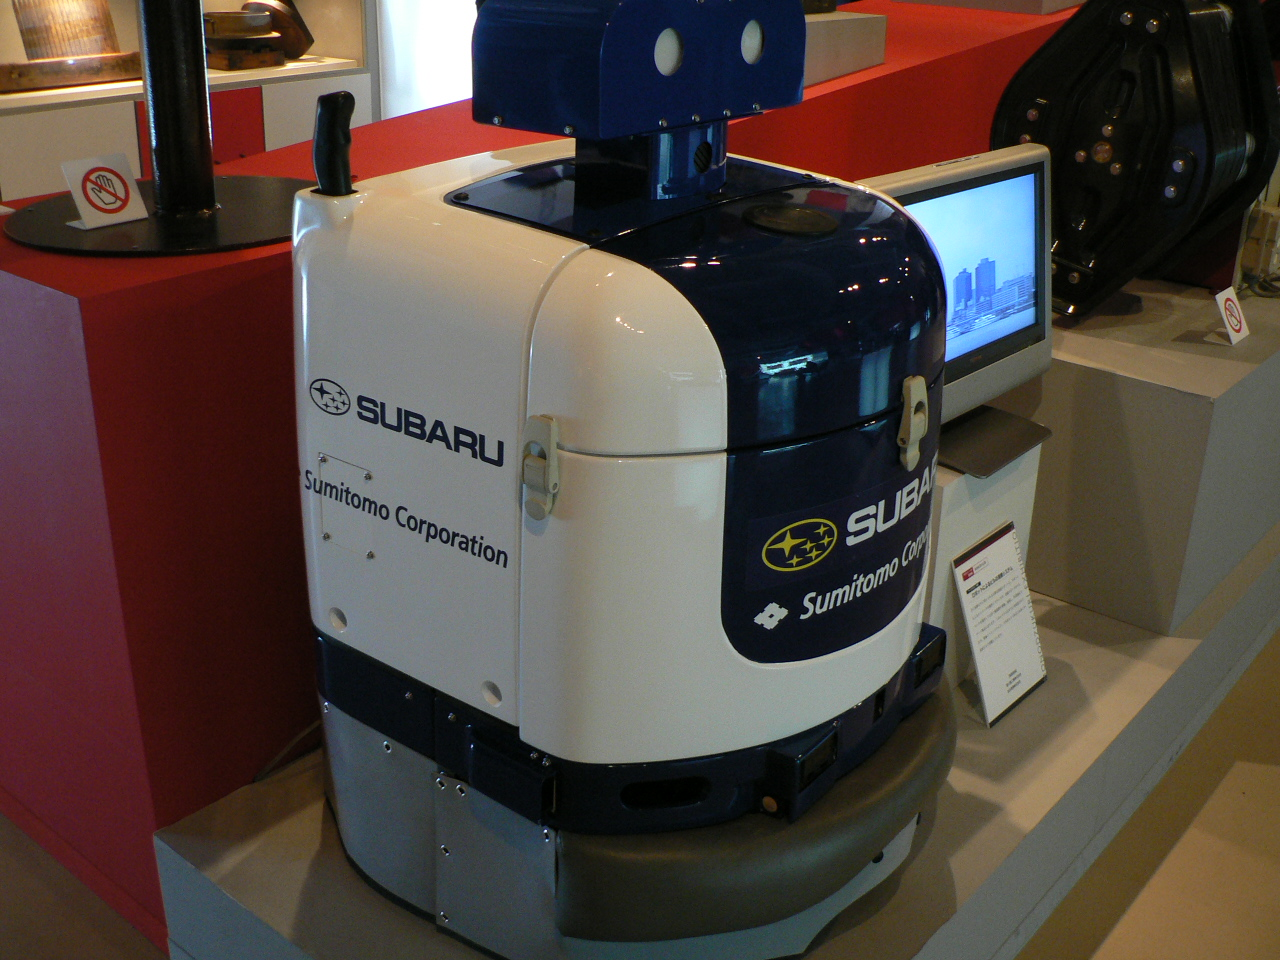 File:Autonomous cleaning robot by FHI jpg - Wikimedia Commons